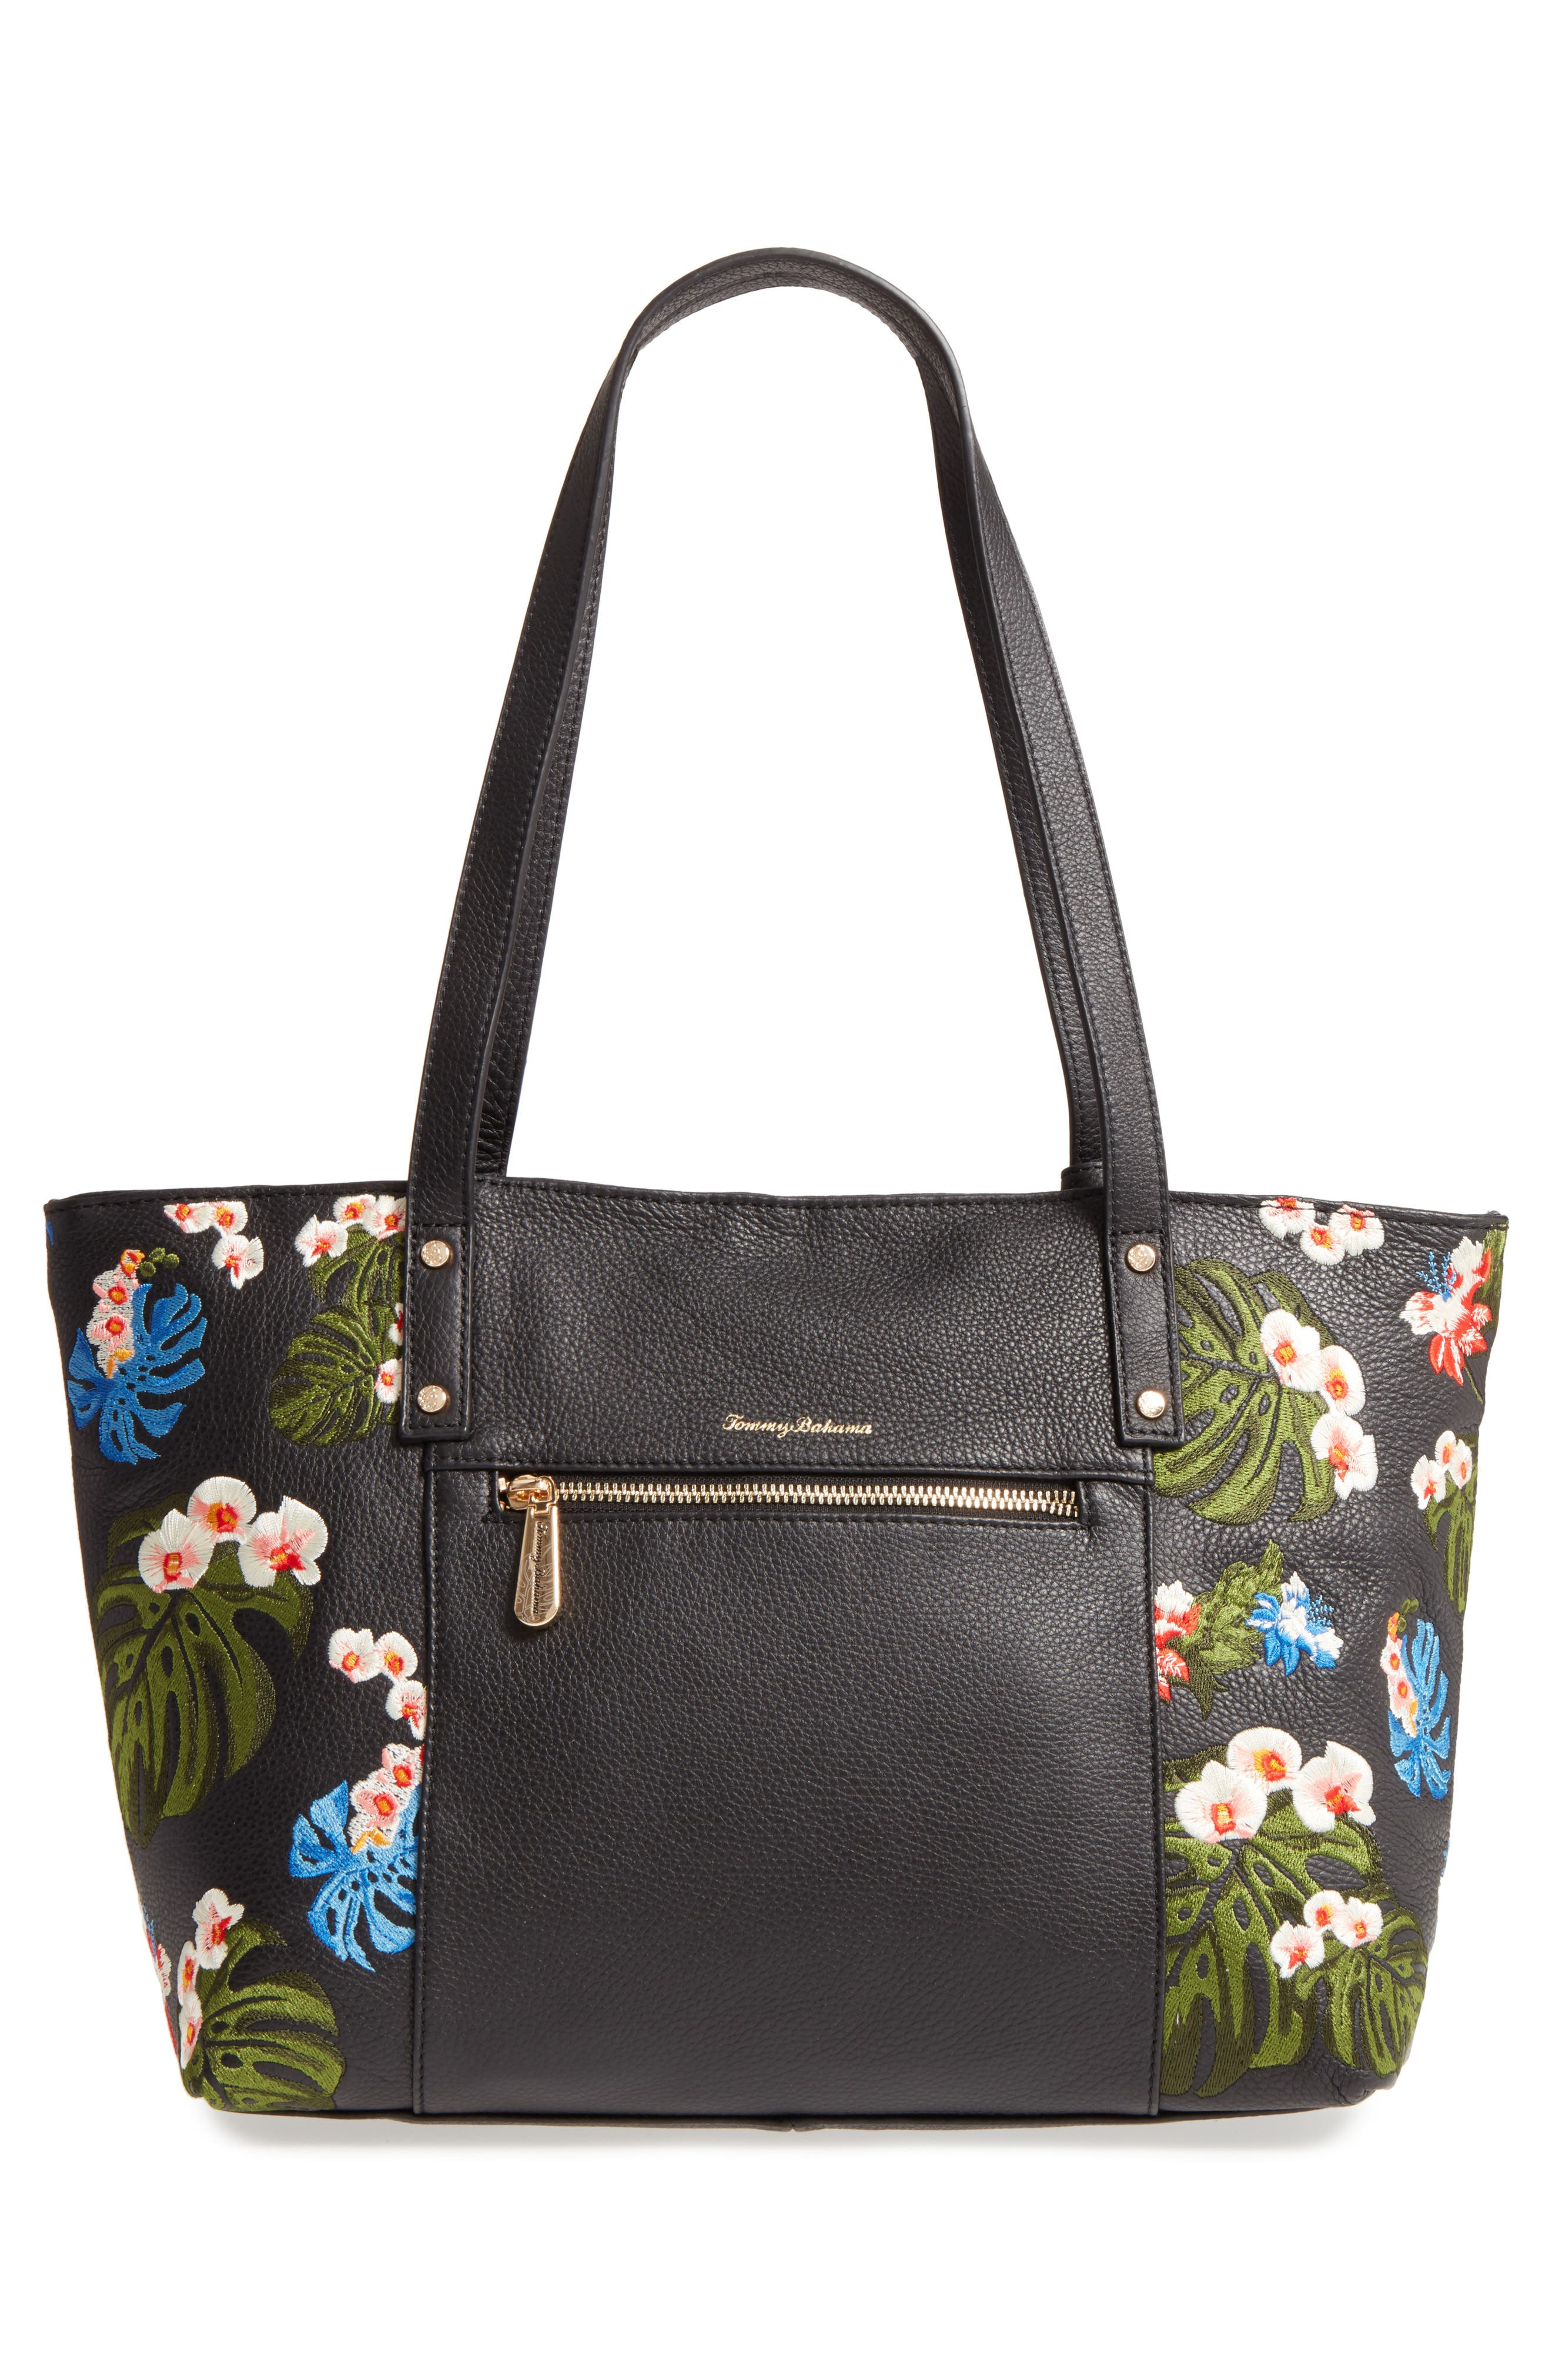 Cozumel Floral Embroidered Leather Tote,                             Alternate thumbnail 3, color,                             001